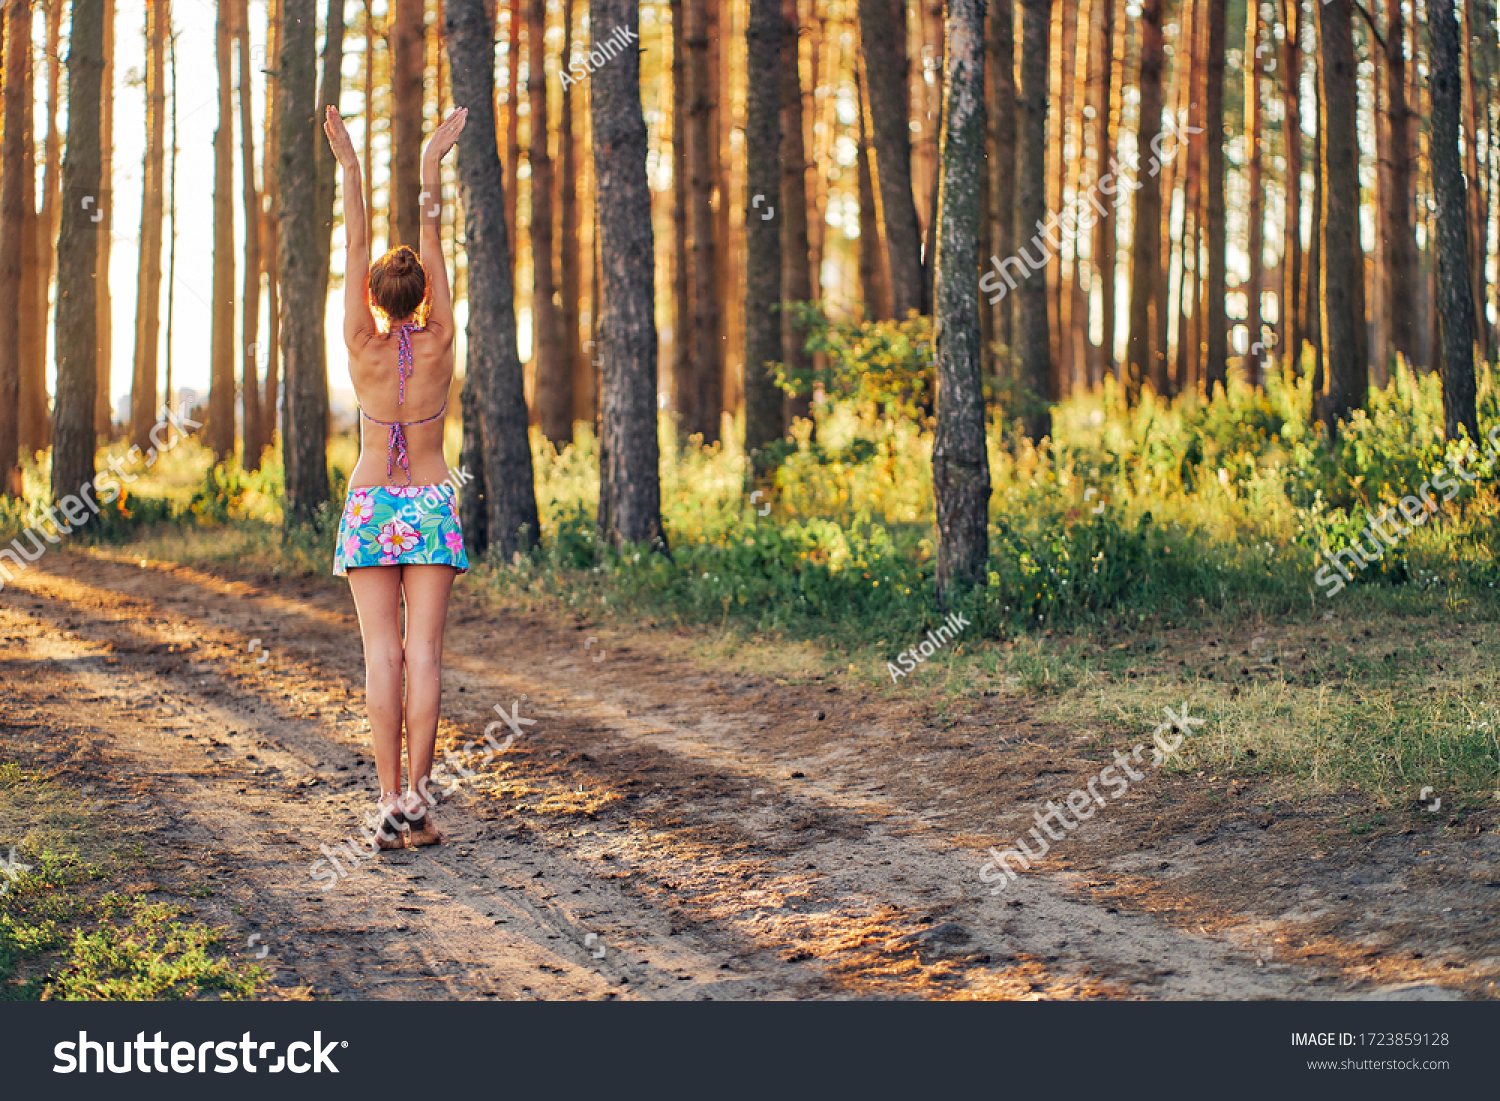 https://image.shutterstock.com/z/stock-photo-woman-in-swimsuit-and-sport-skirt-pulls-hands-to-the-sun-1723859128.jpg